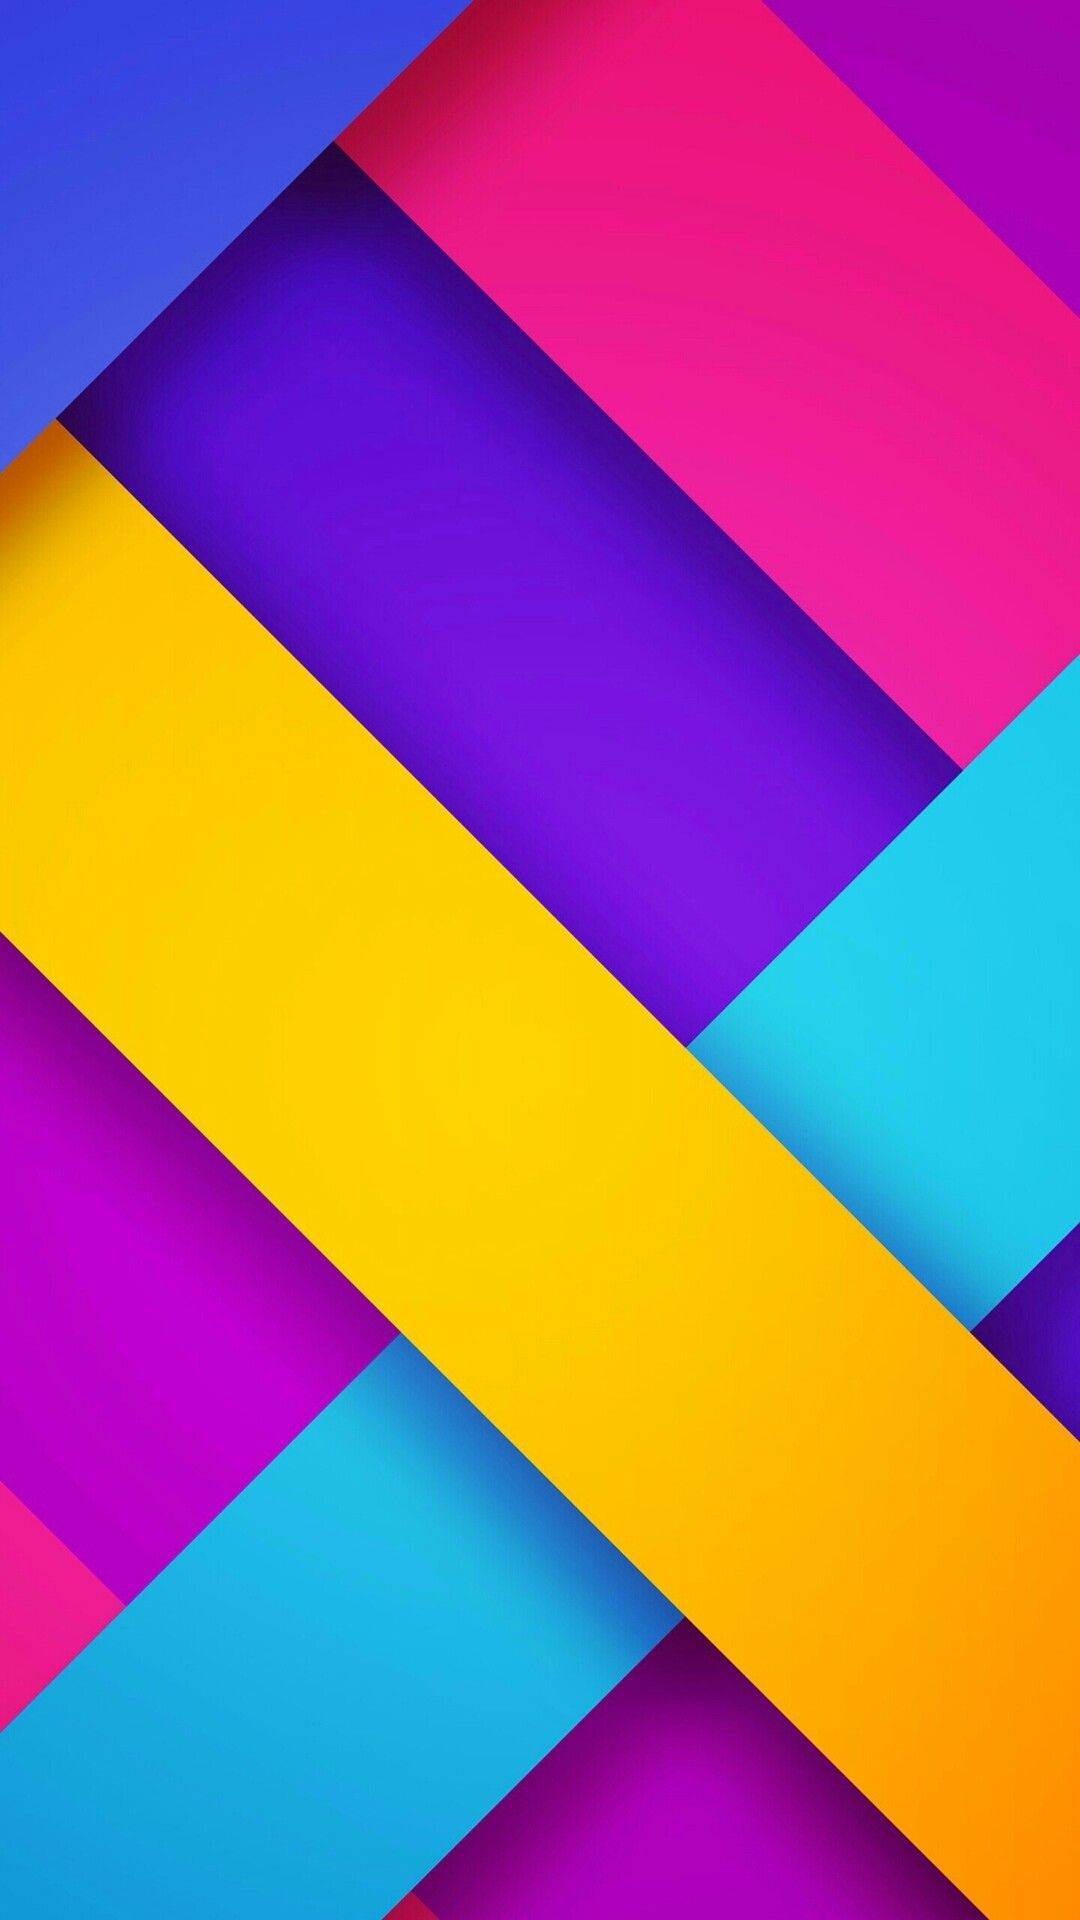 Colorful Wallpaper Colorful Wallpaper Geometric Colourful Wallpaper Geometric Wallpaper